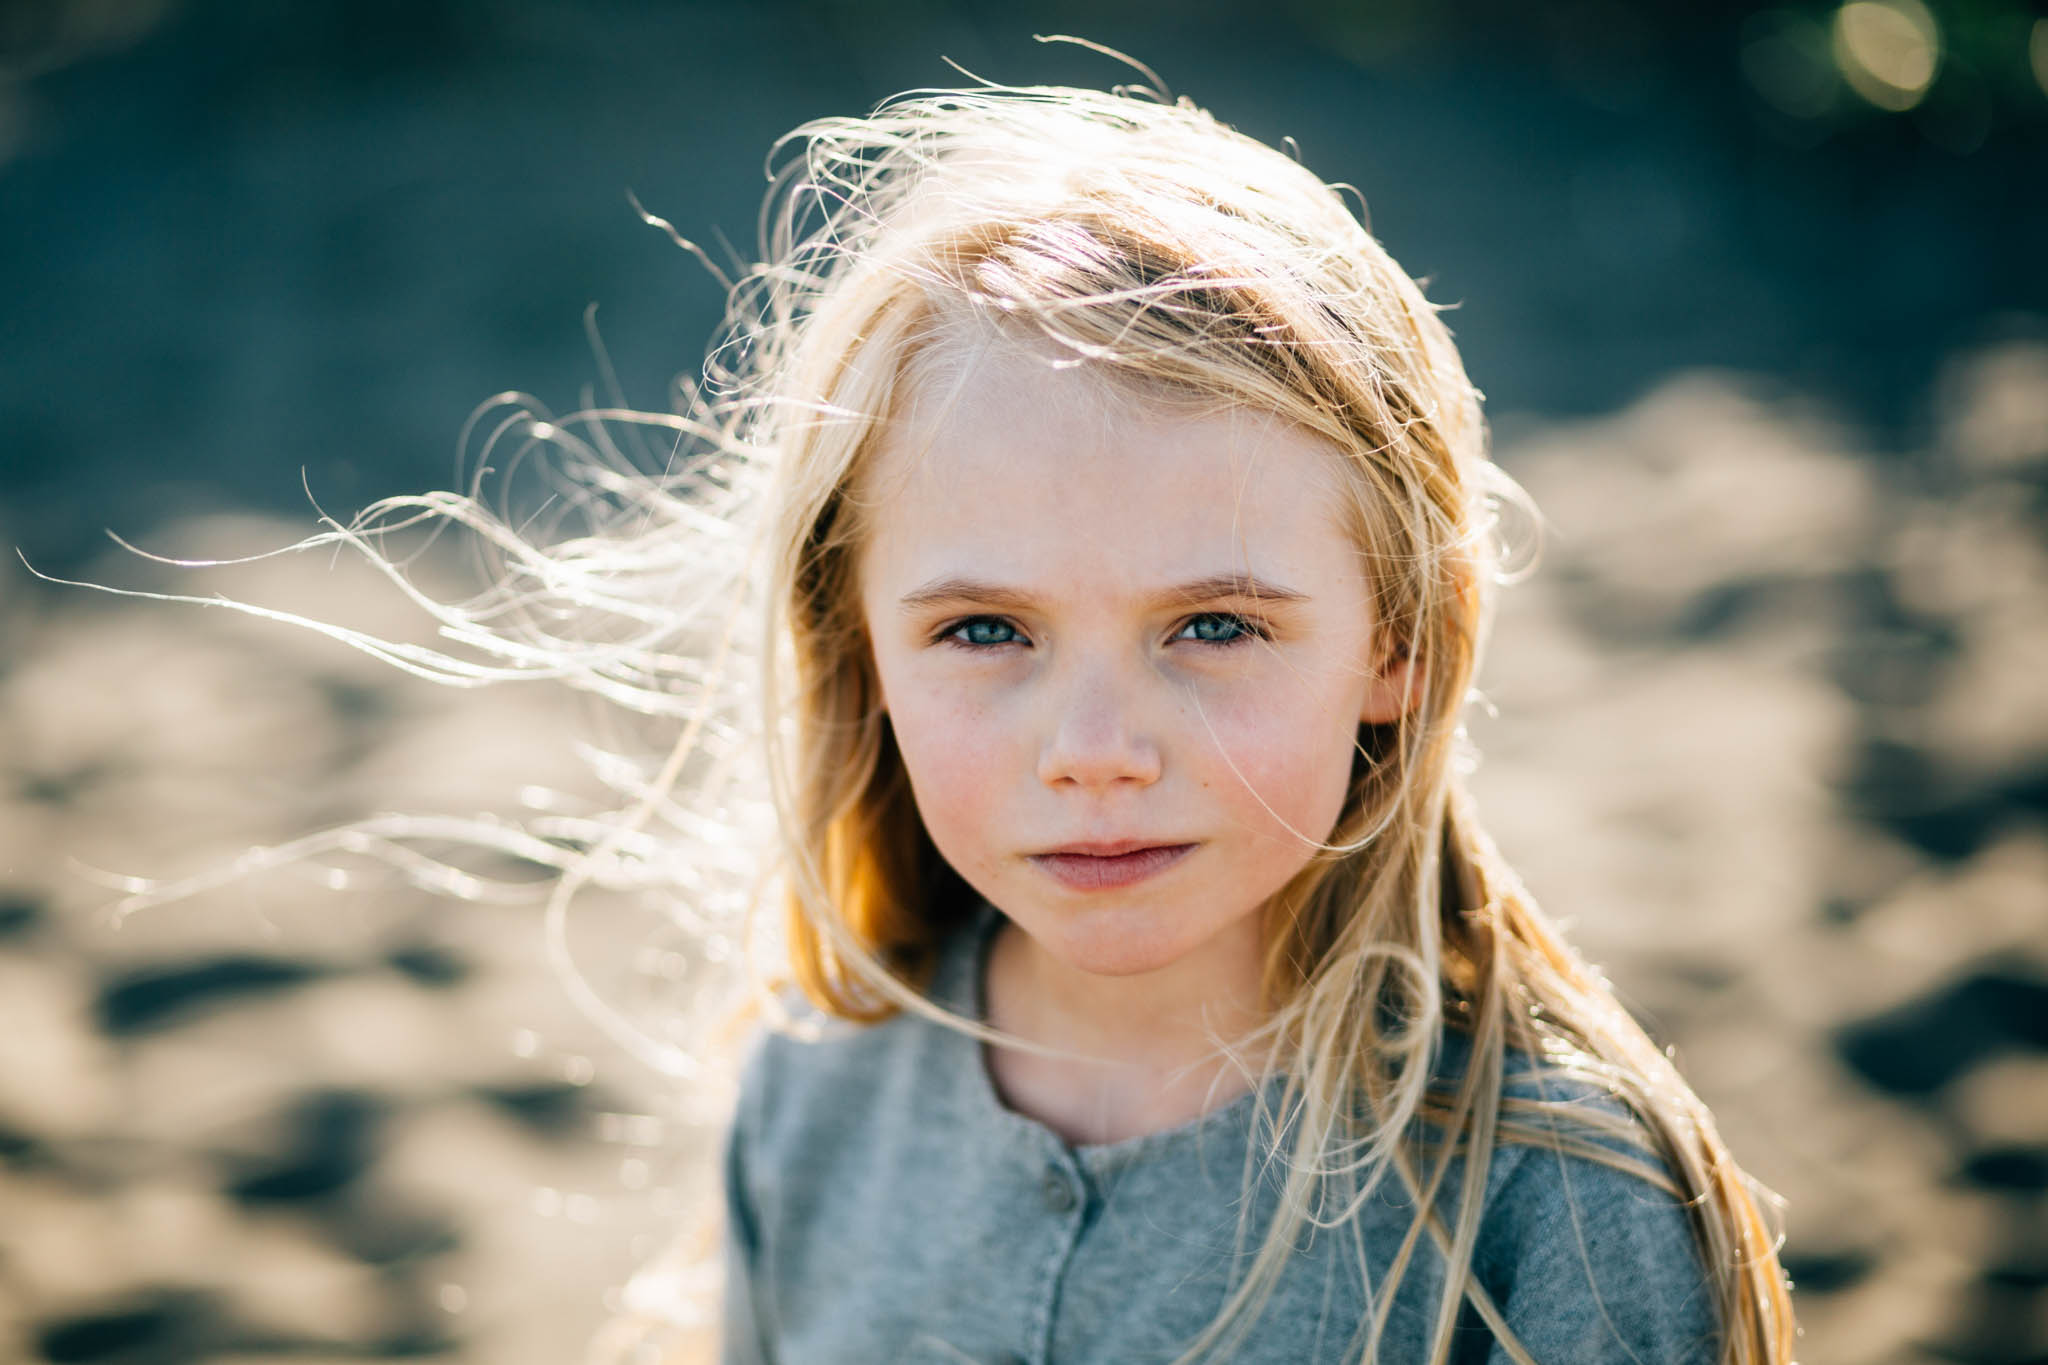 Vancouver commercial children's fashion photographer - Emmy Lou Virginia Photography-14.jpg